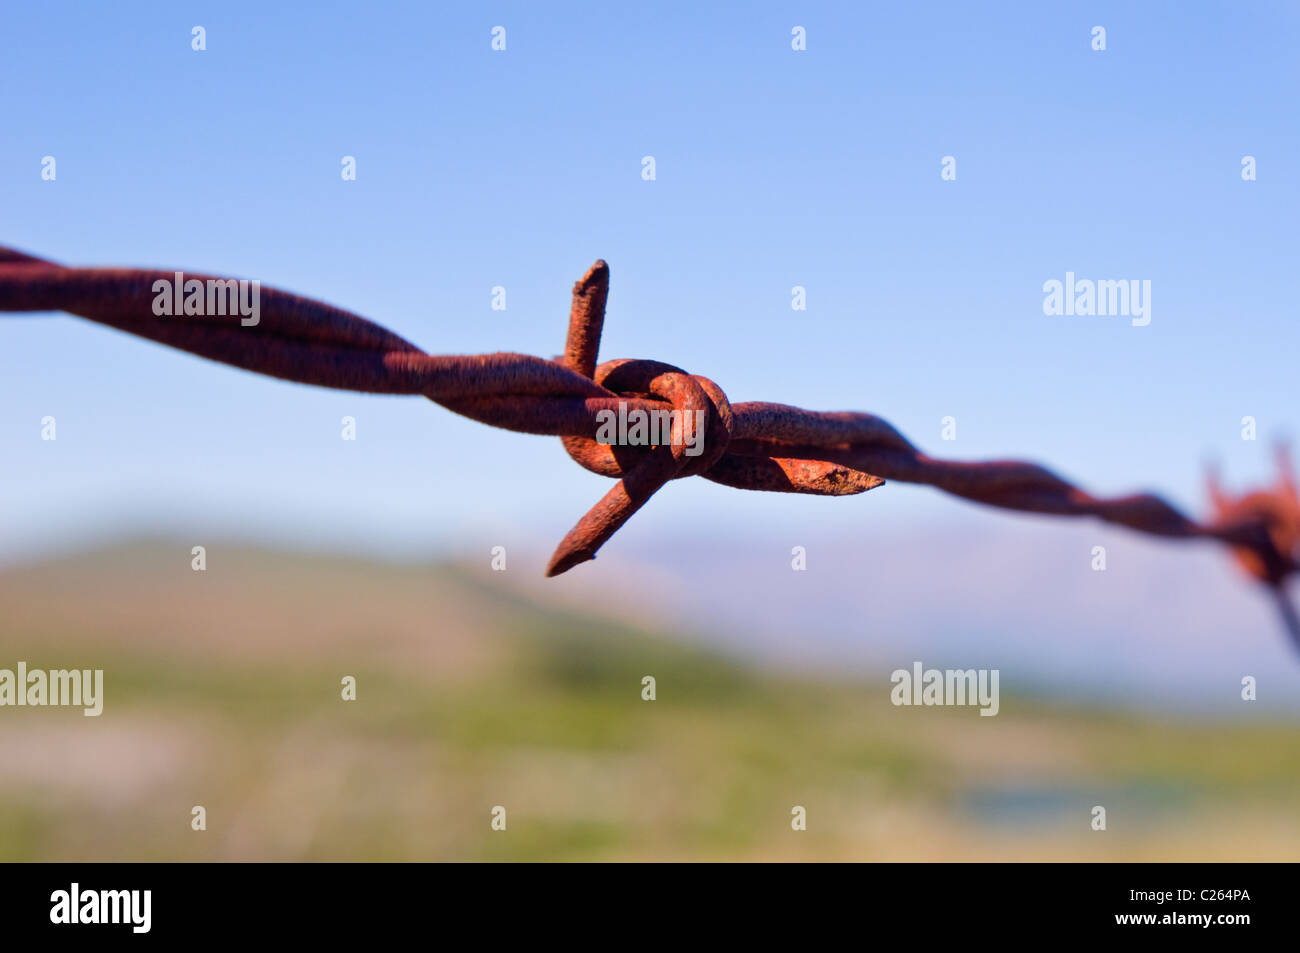 Close up of rusty barbed wire barb - Stock Image